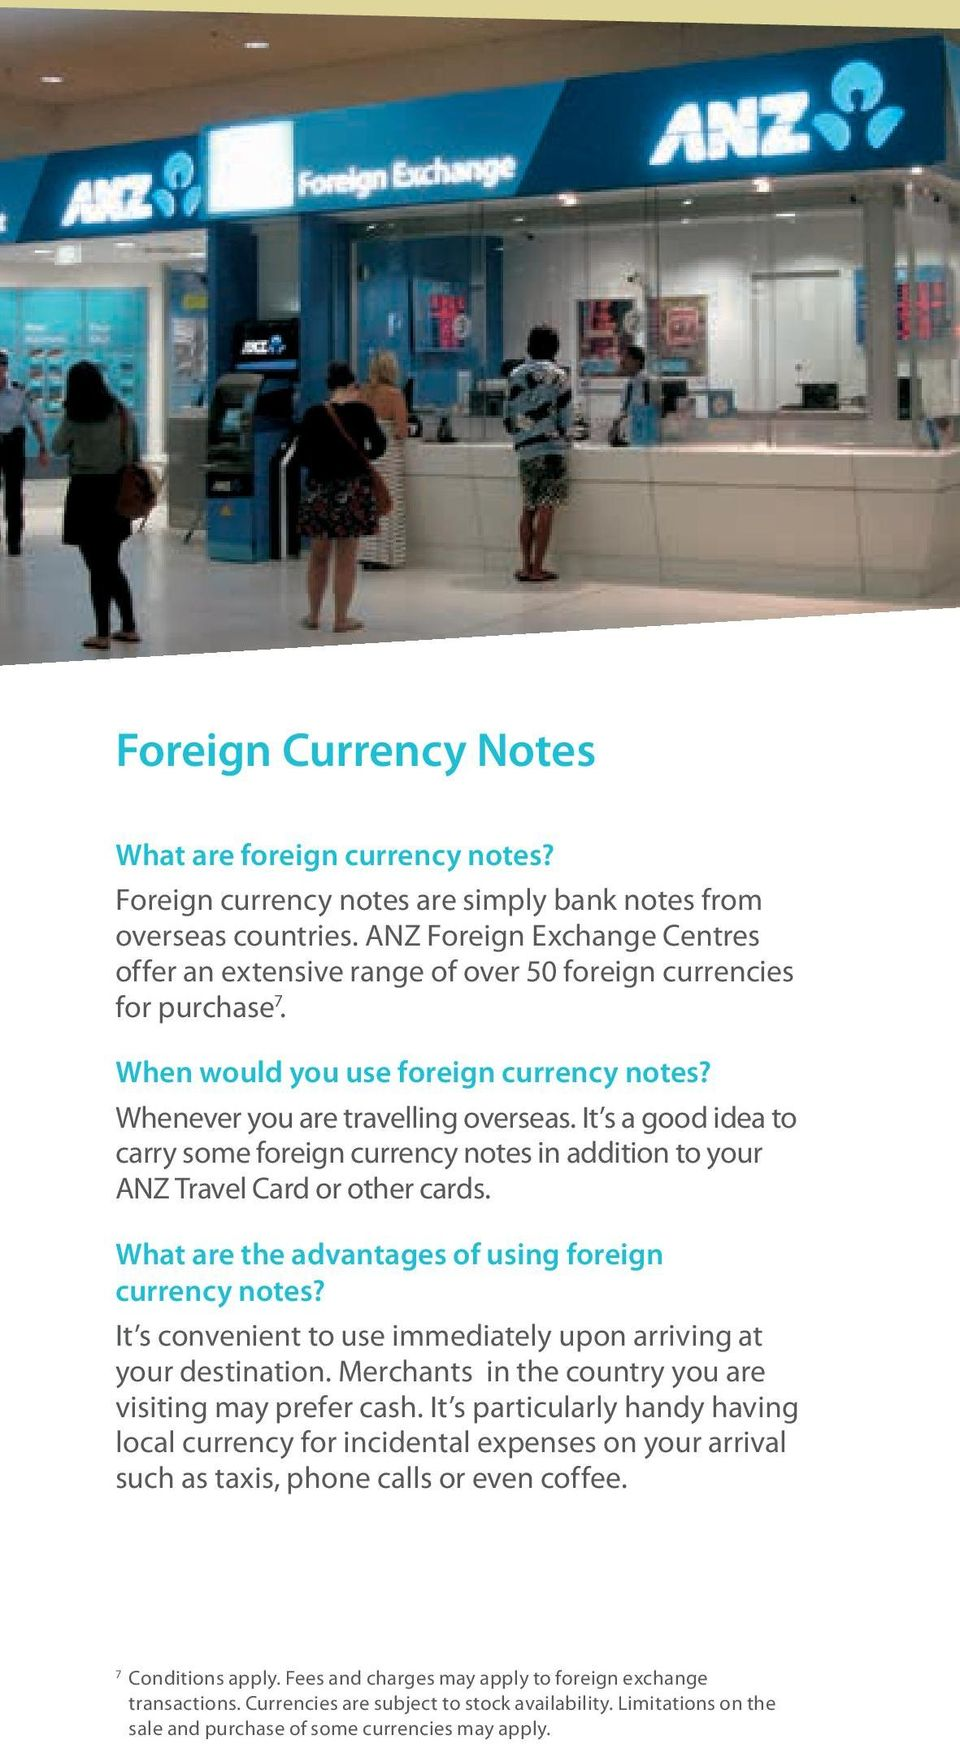 It s a good idea to carry some foreign currency notes in addition to your ANZ Travel Card or other cards. What are the advantages of using foreign currency notes?